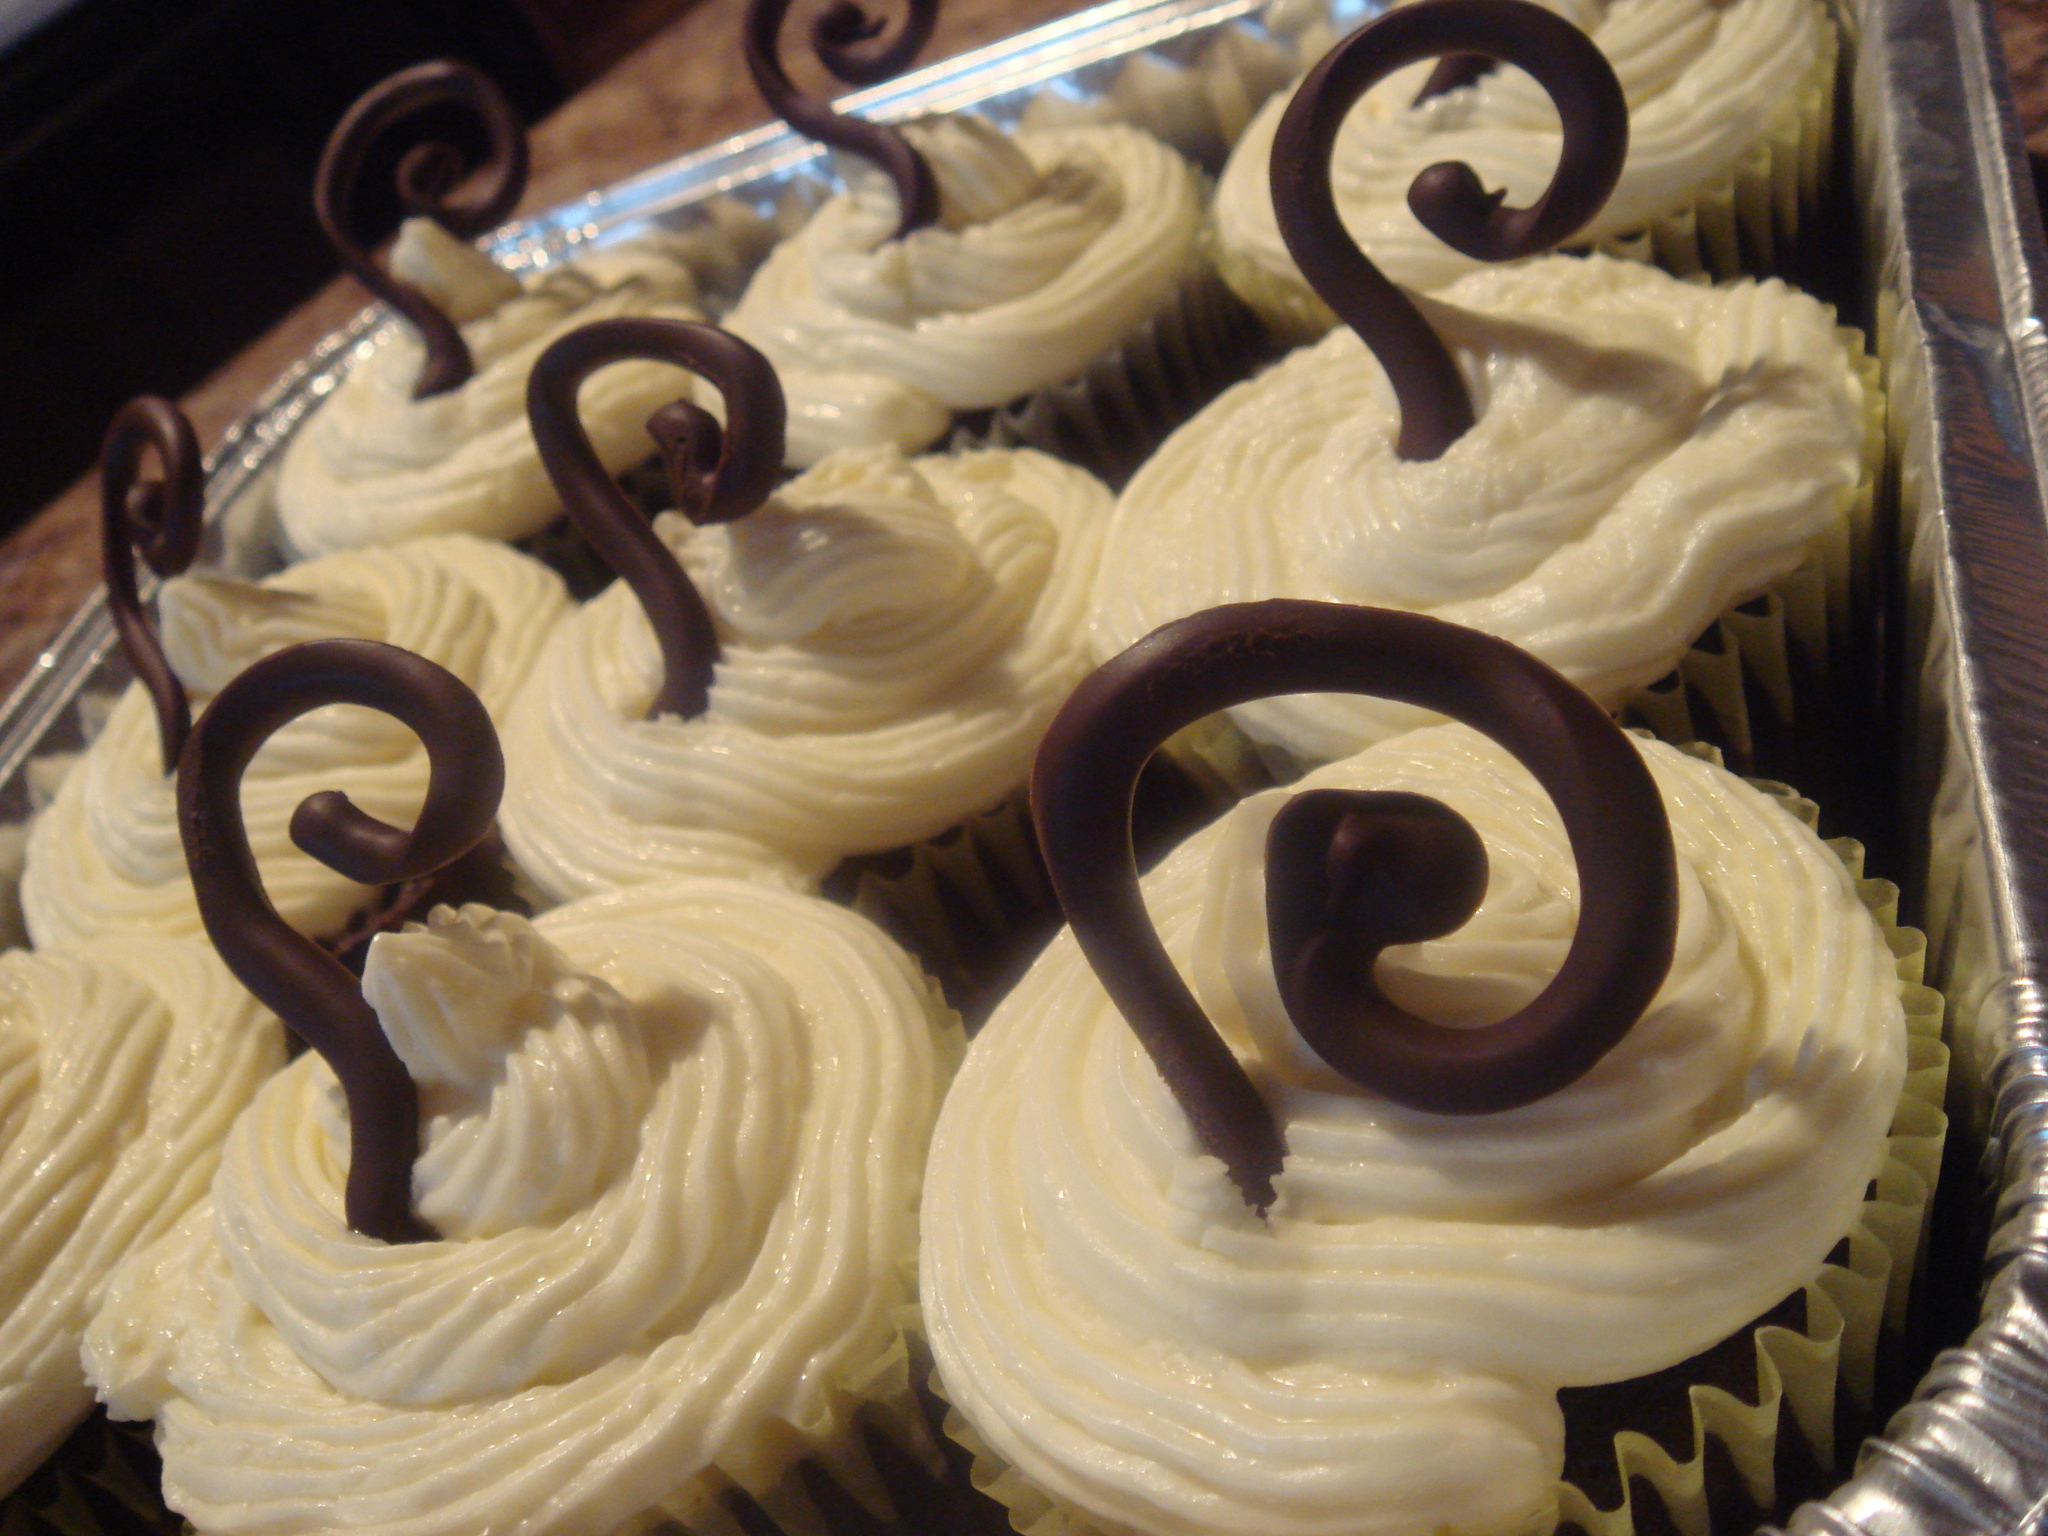 Get it?  They're chocolate swirls o' steam.  Cause they're mocha cupcakes!